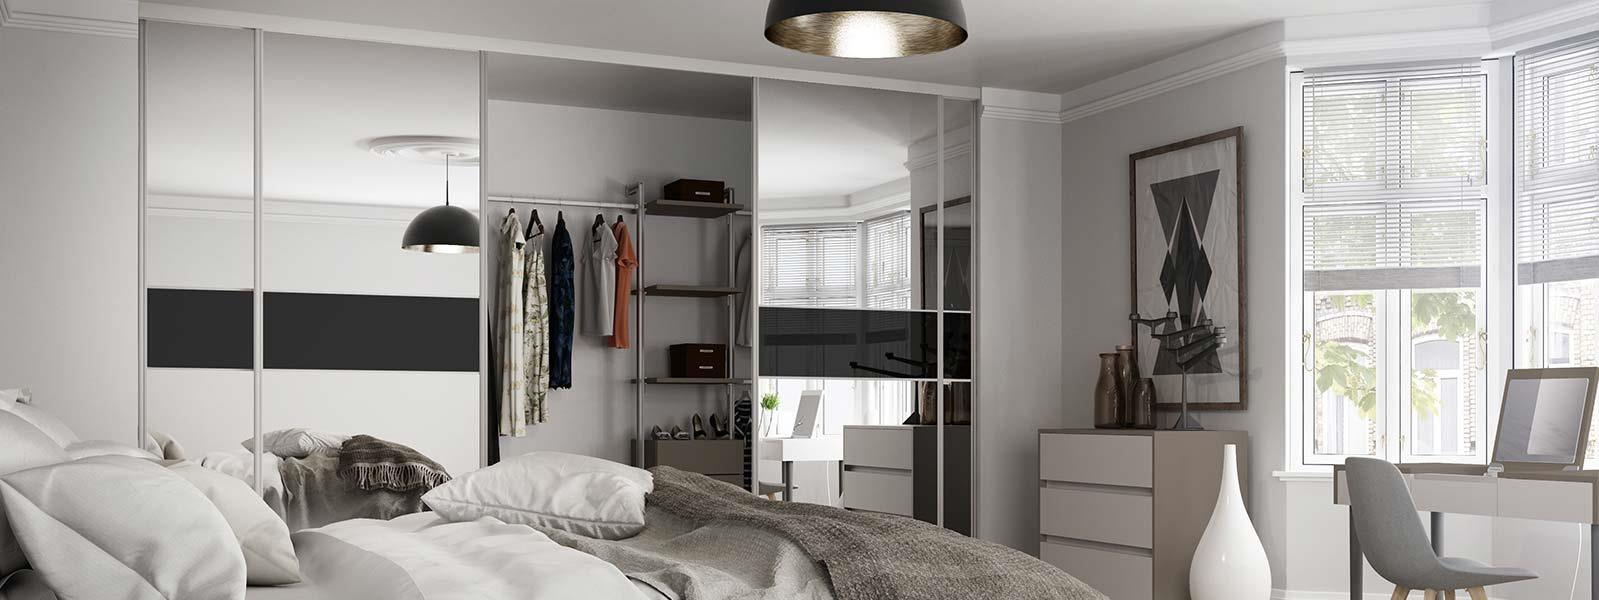 Silver And Black Bedroom Bespoke Built In Wardrobes Custom Sliding Wardrobes Spaceslide